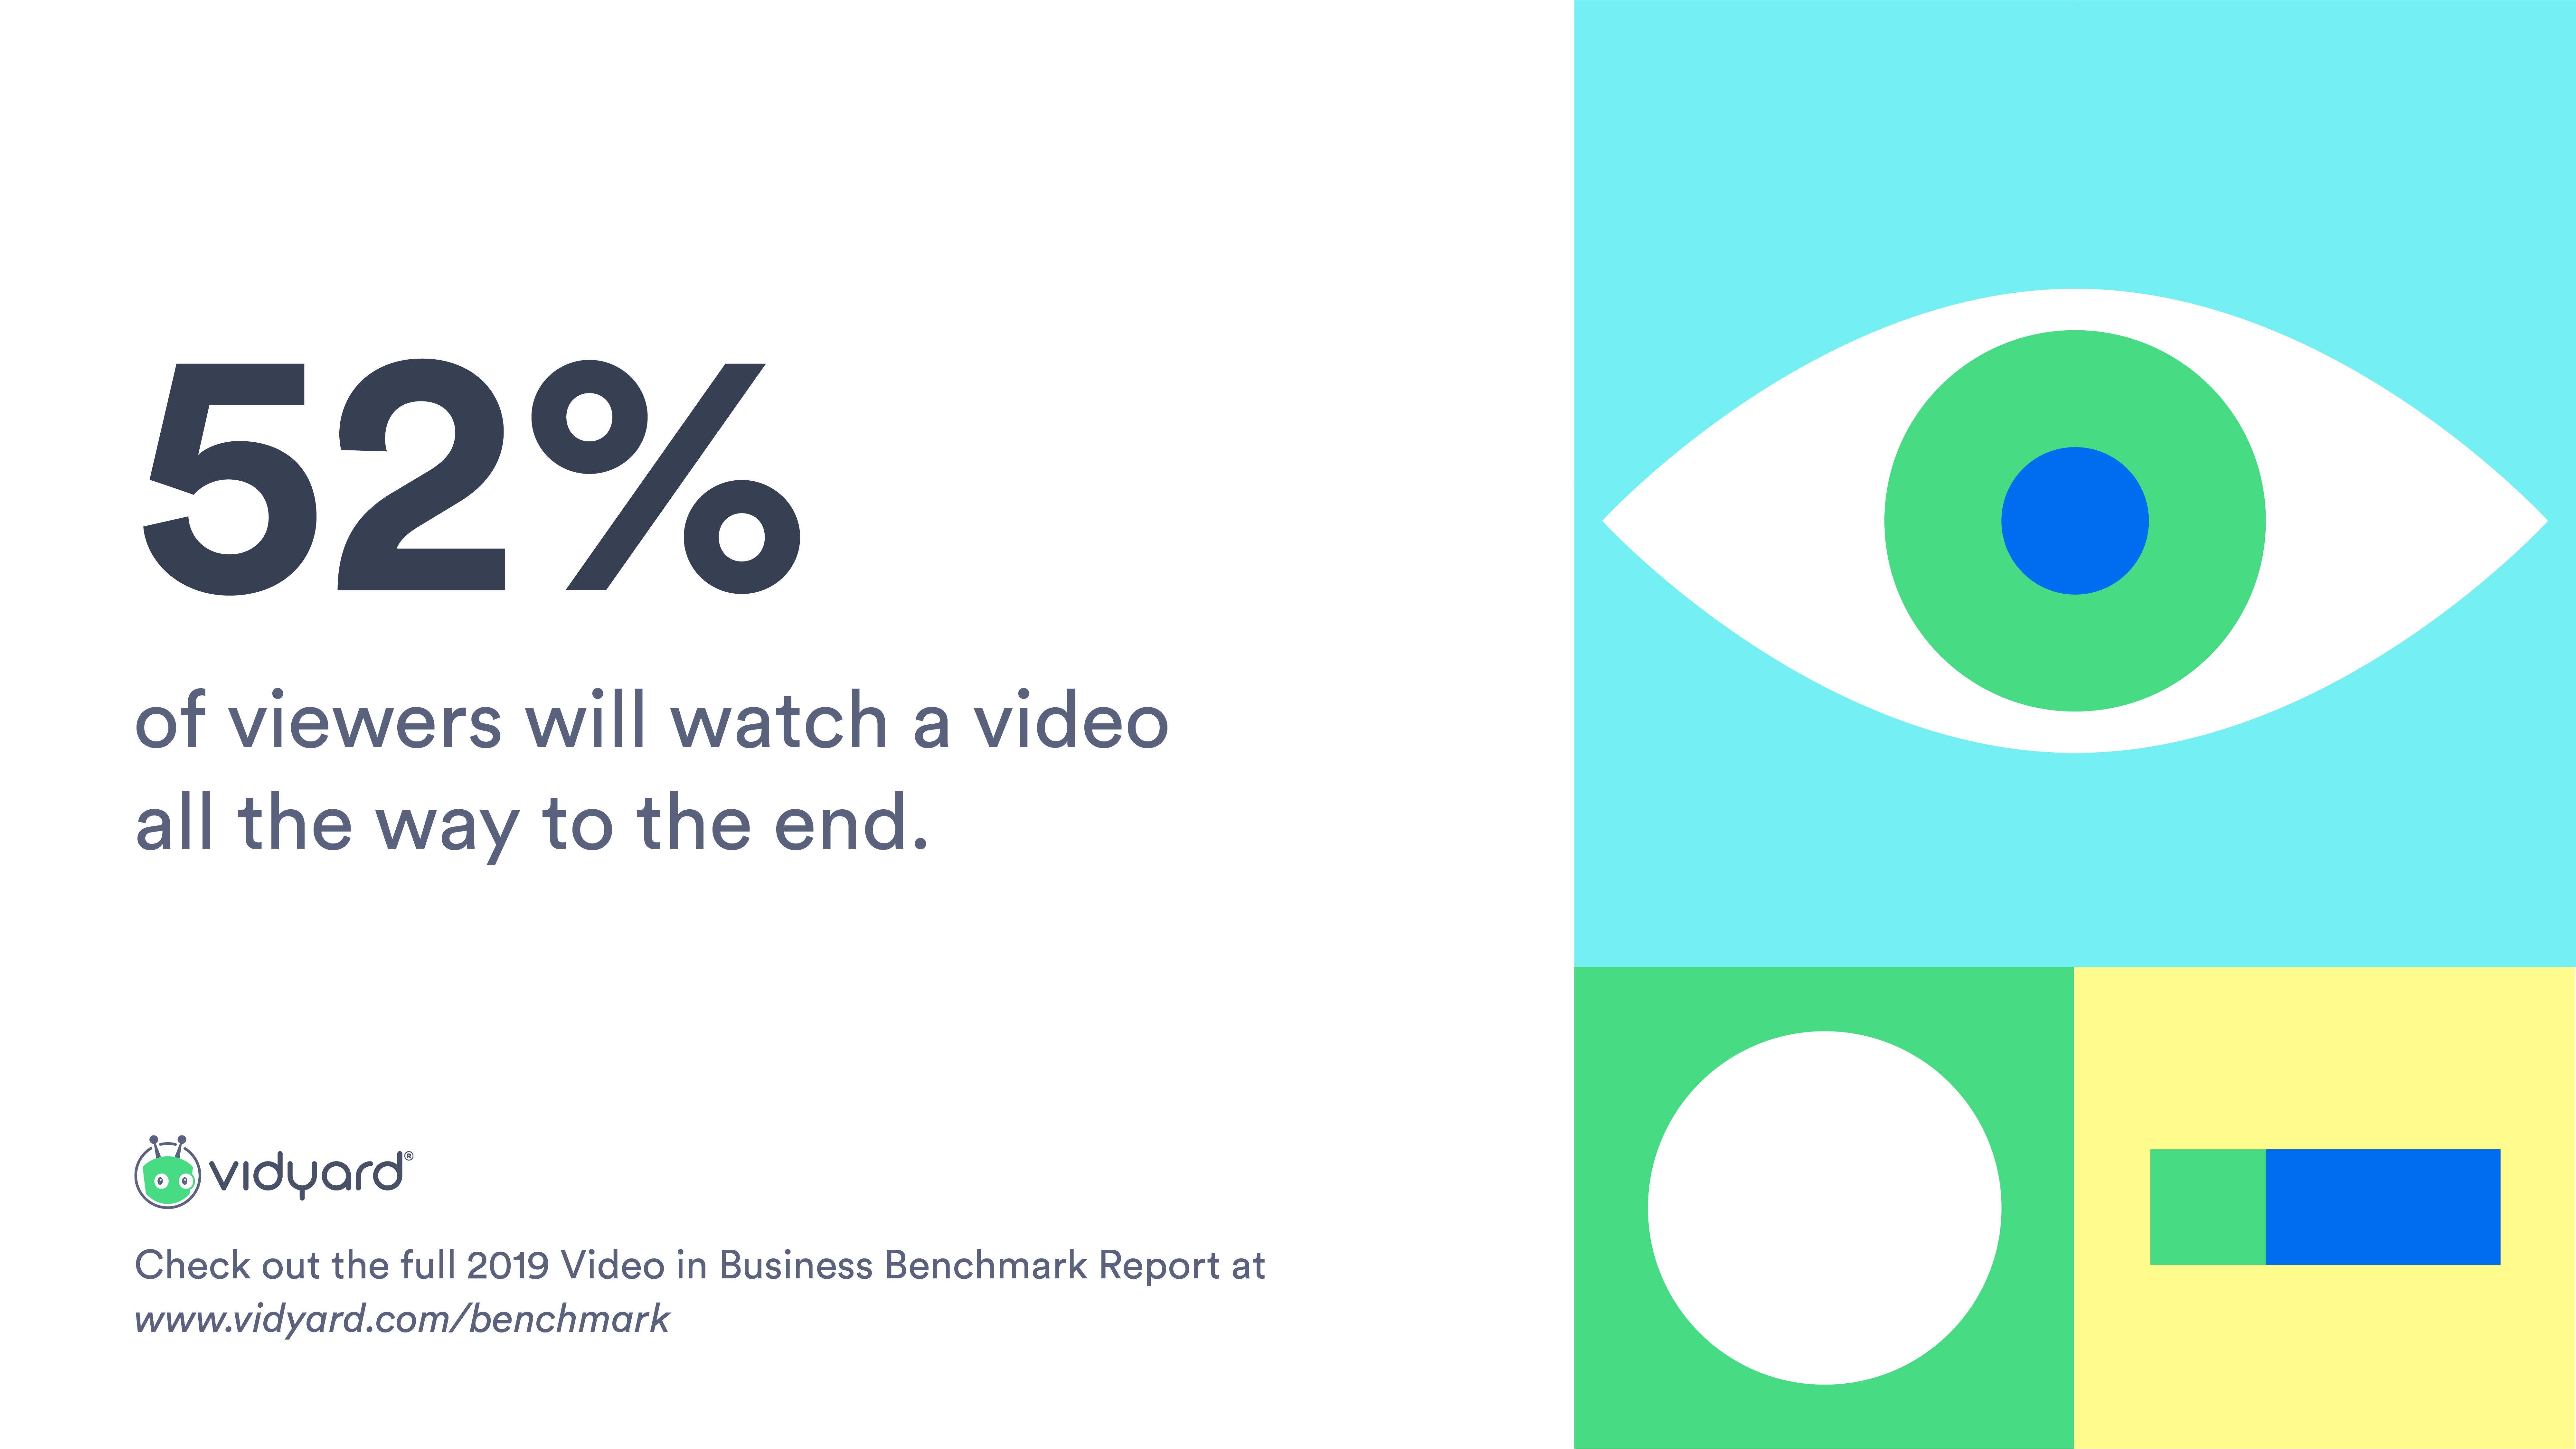 Vidyard Releases 2019 Video in Business Benchmark Report; Uncovers Latest Trends on Video Creation, Publishing, Engagement and Analytics Across B2B Markets 2